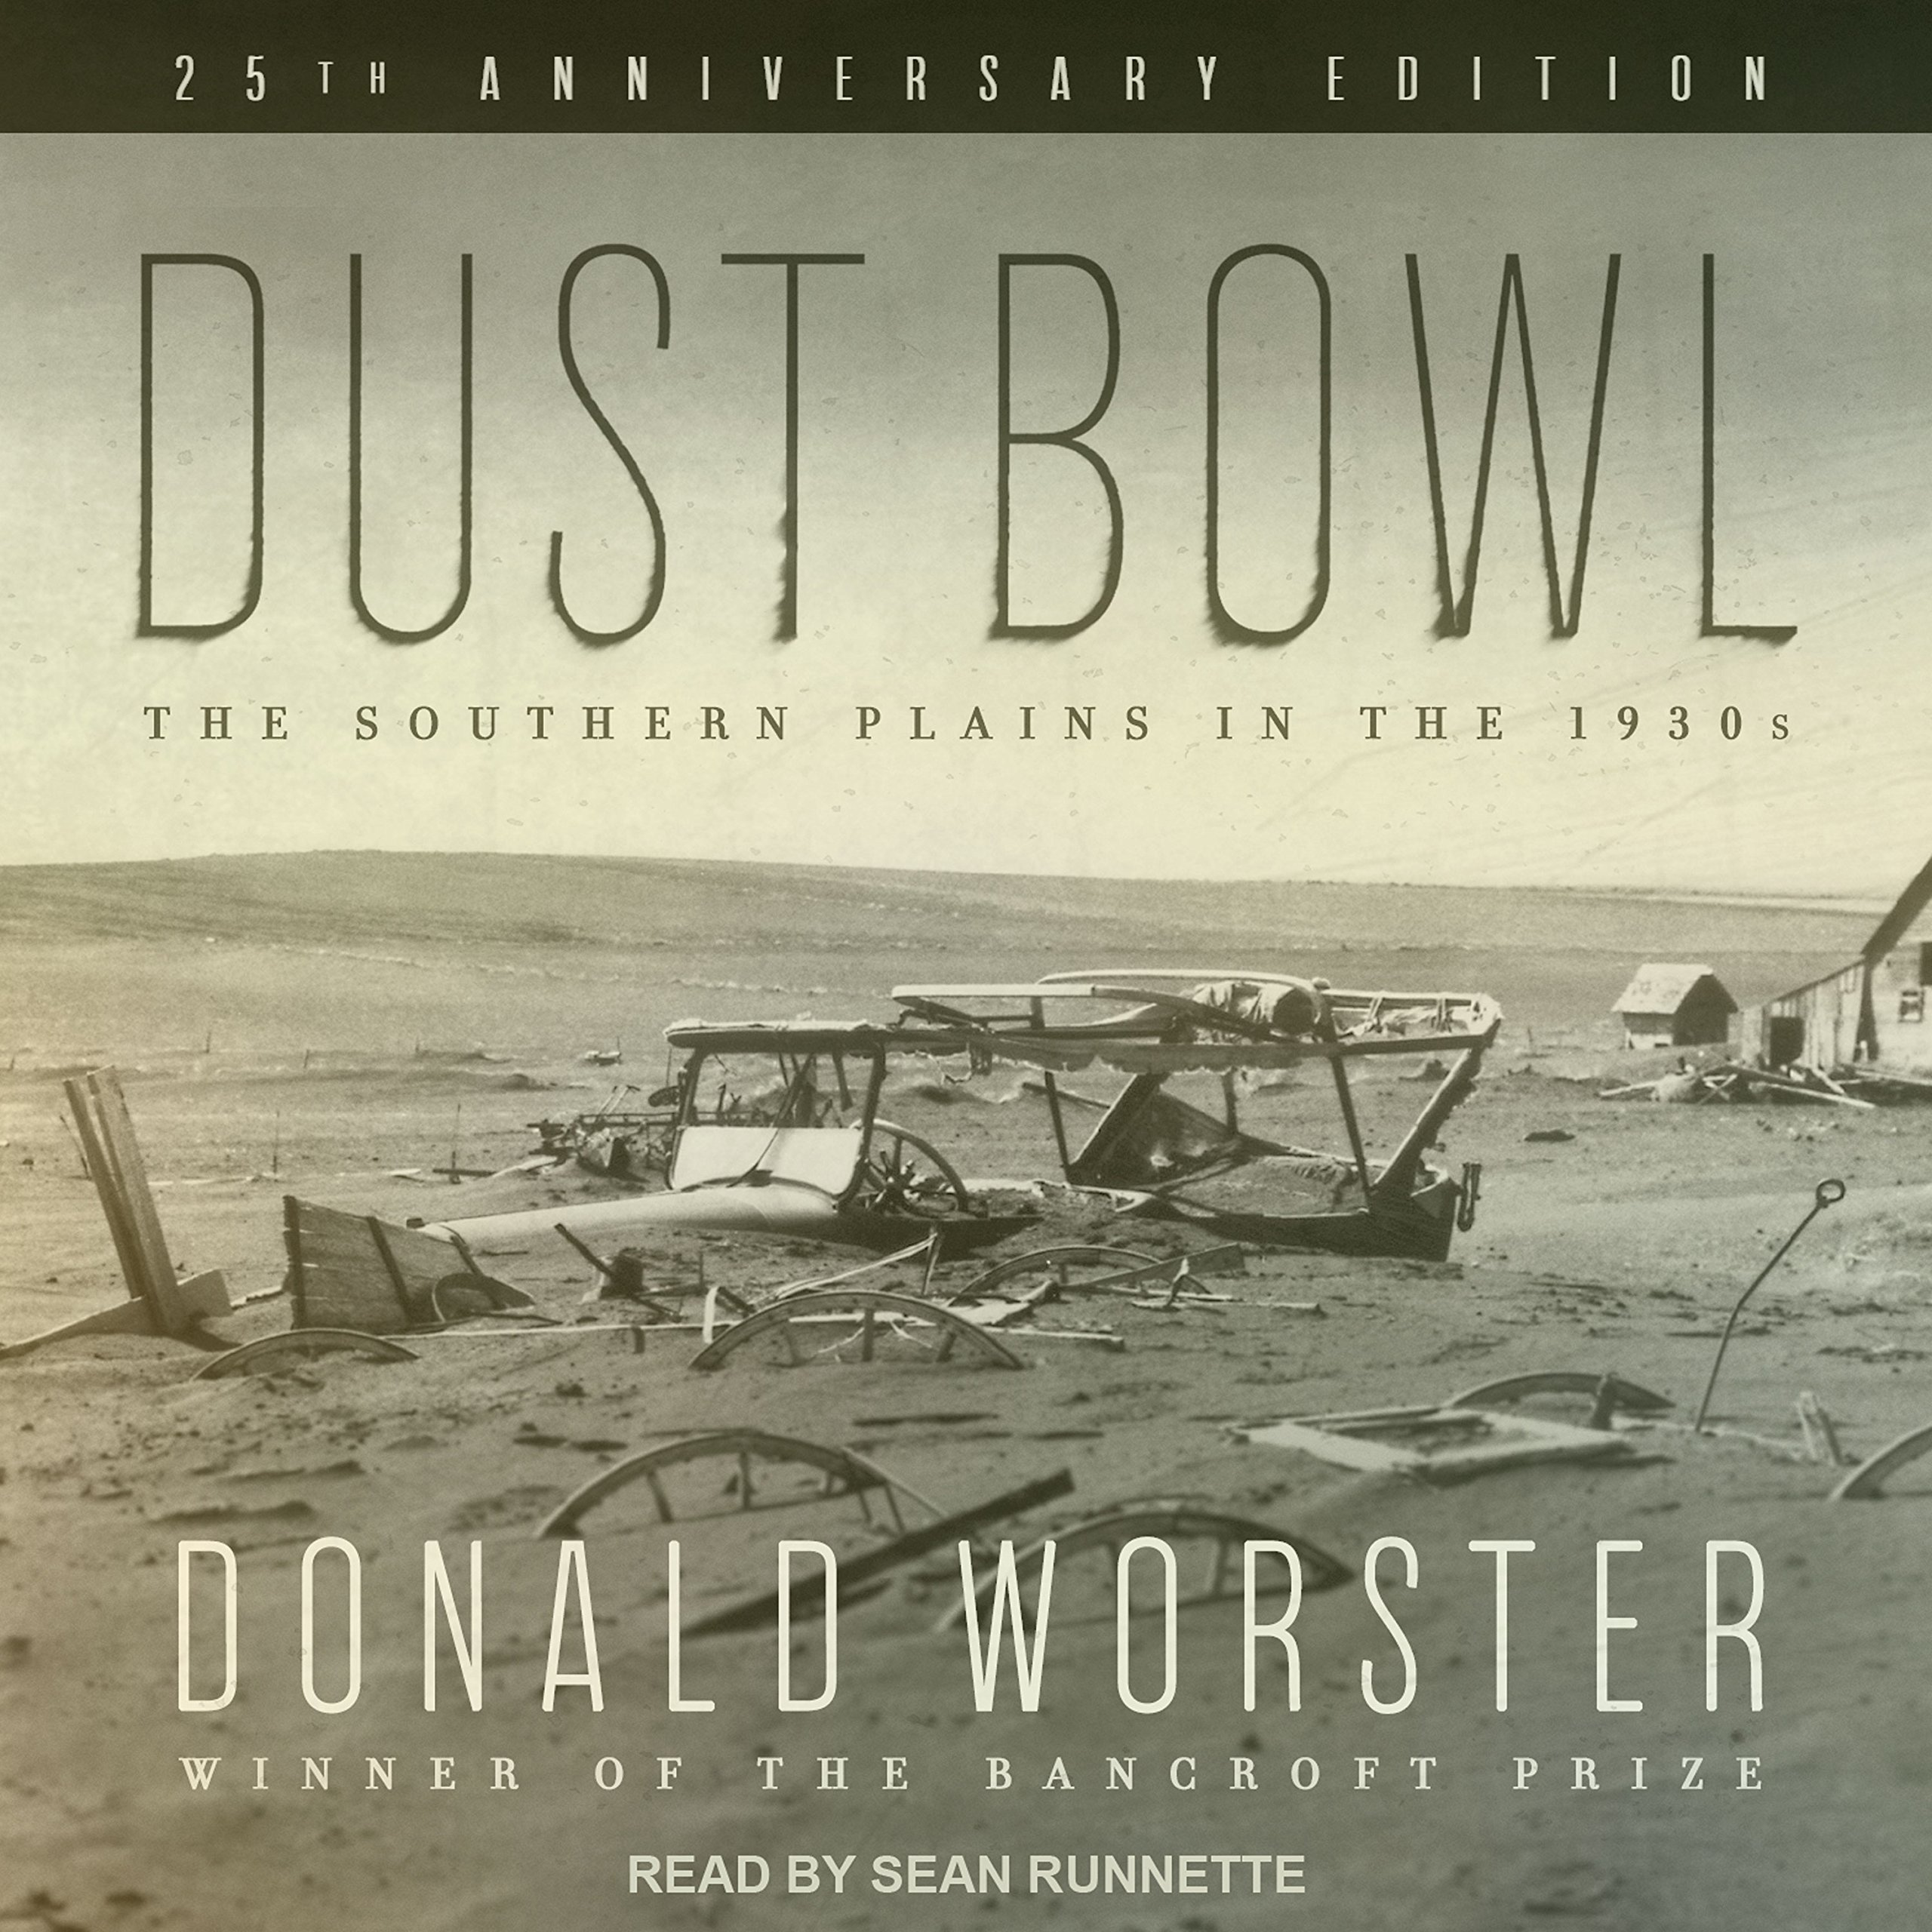 Dust Bowl: The Southern Plains In The 1930s: Donald Worster, Sean Runnette:  9781541452008: Amazon: Books